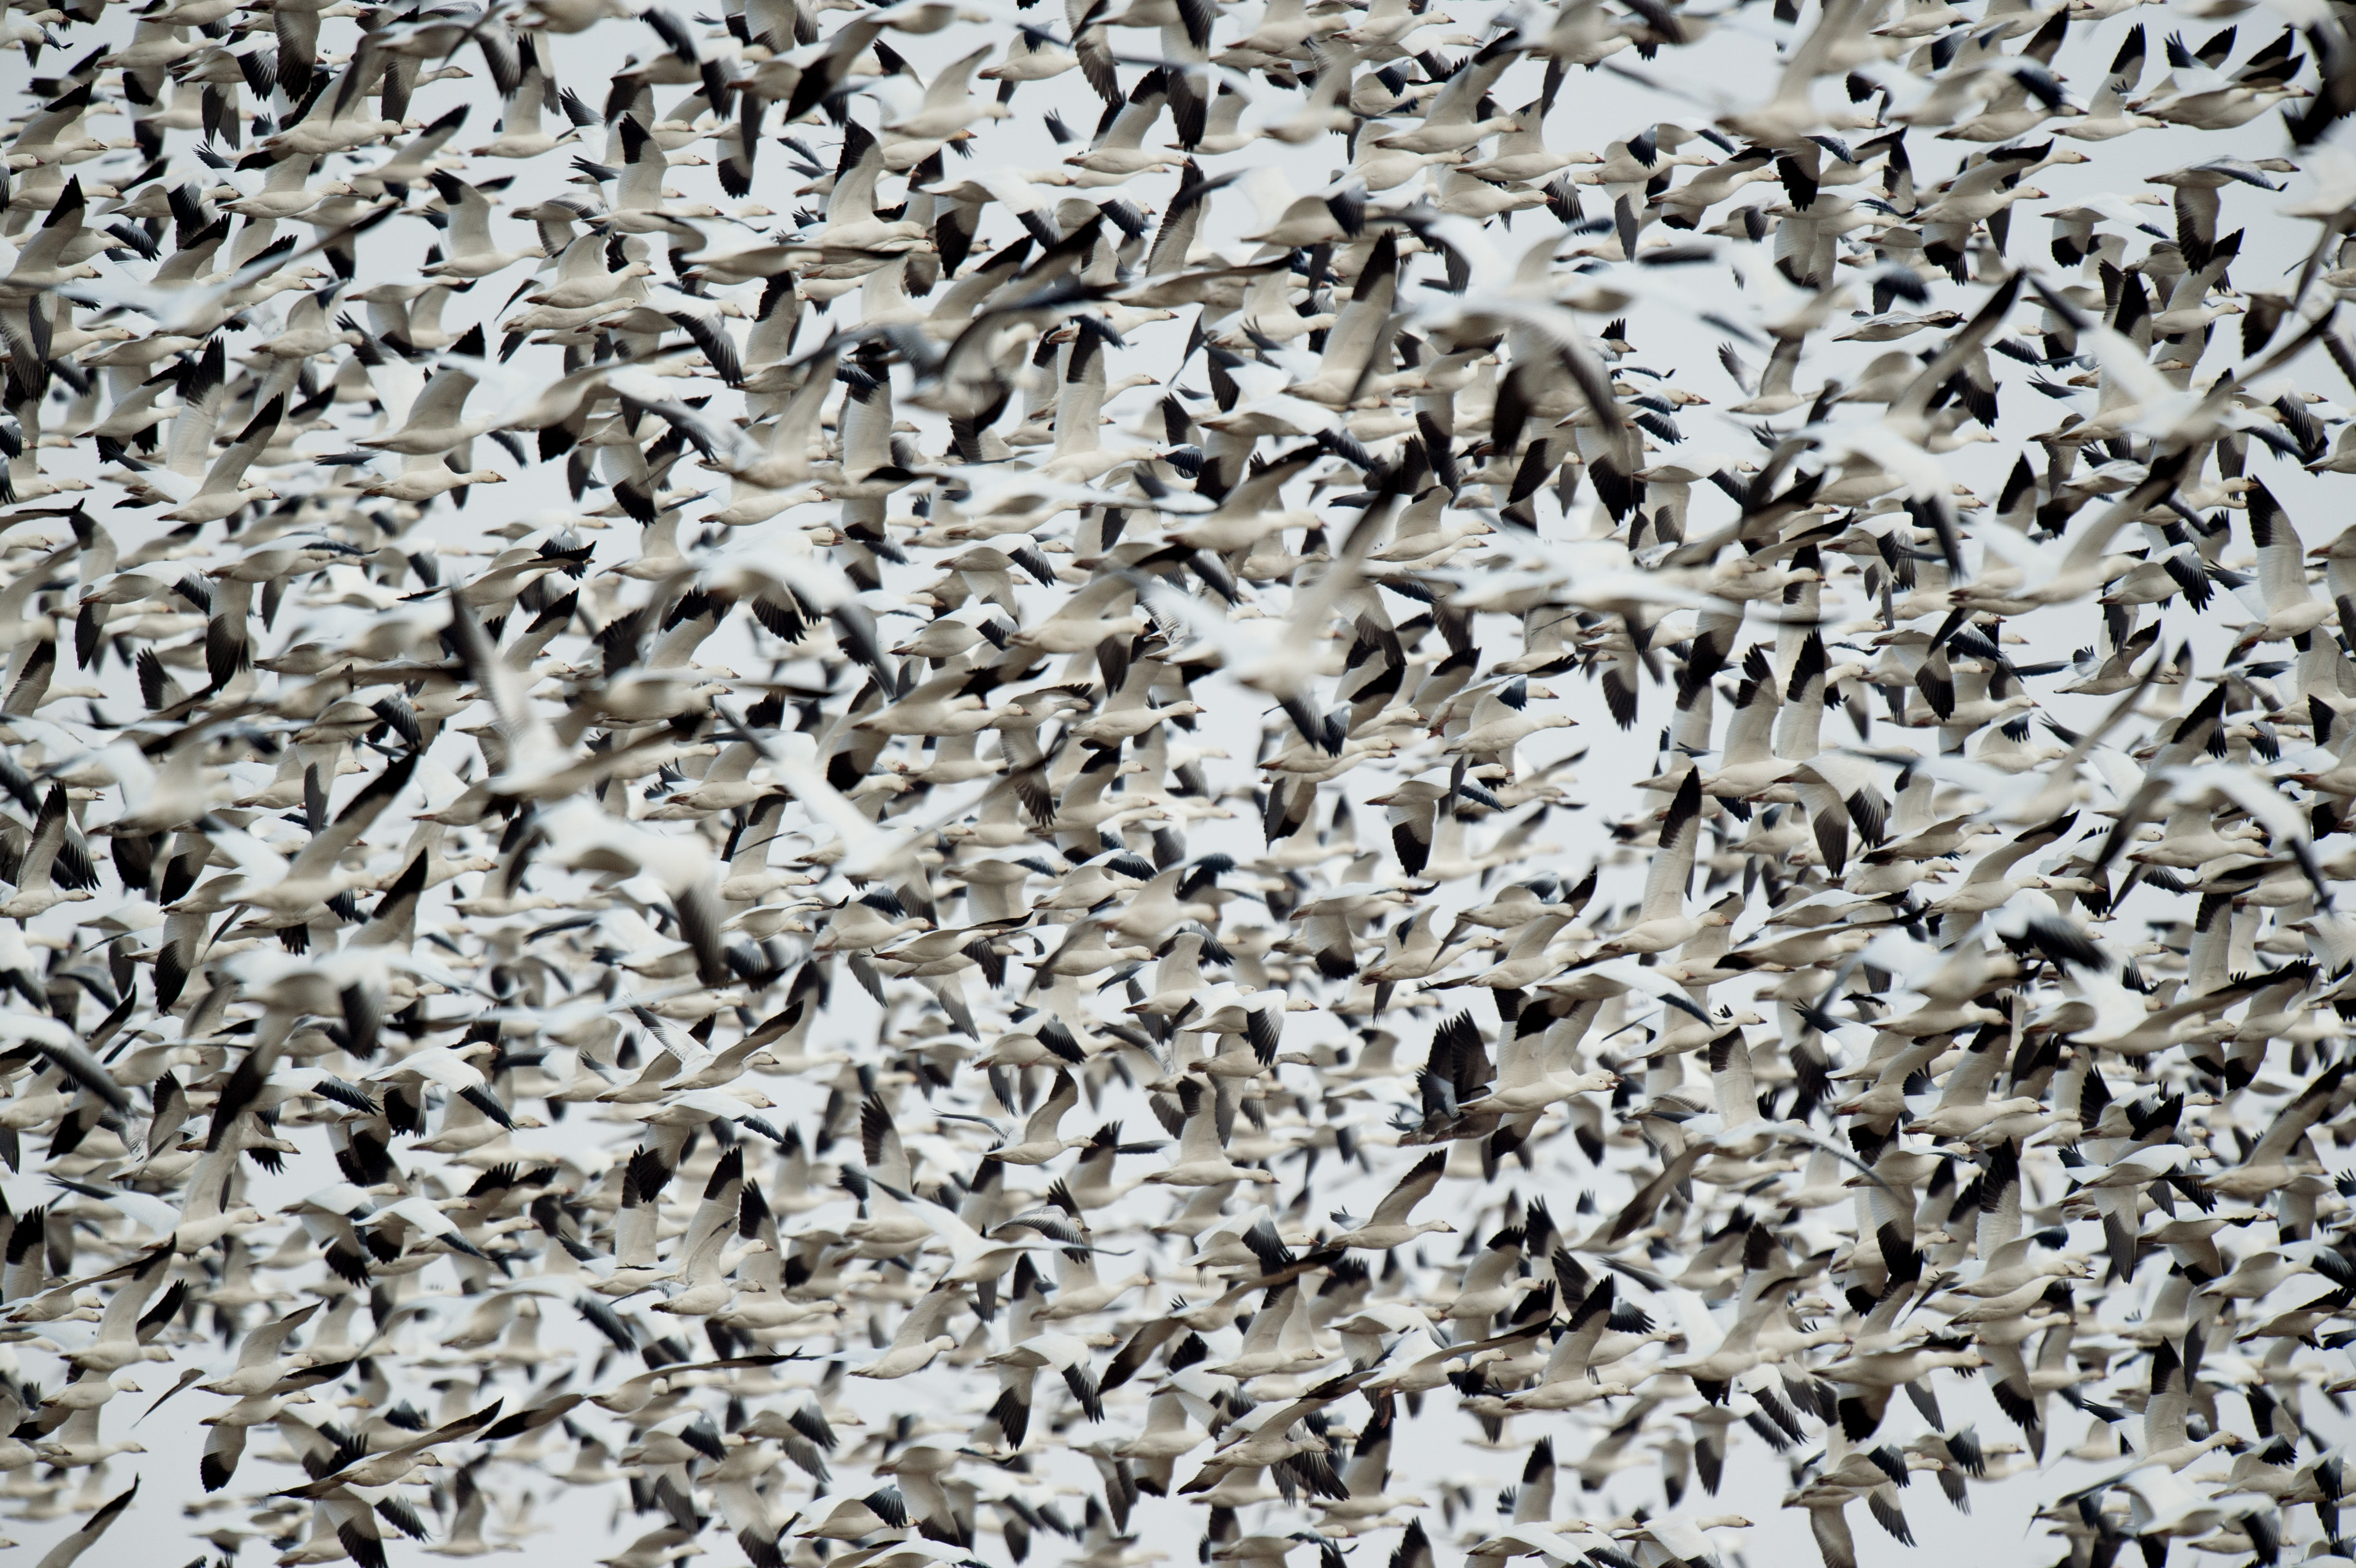 flock of white-and-black birds